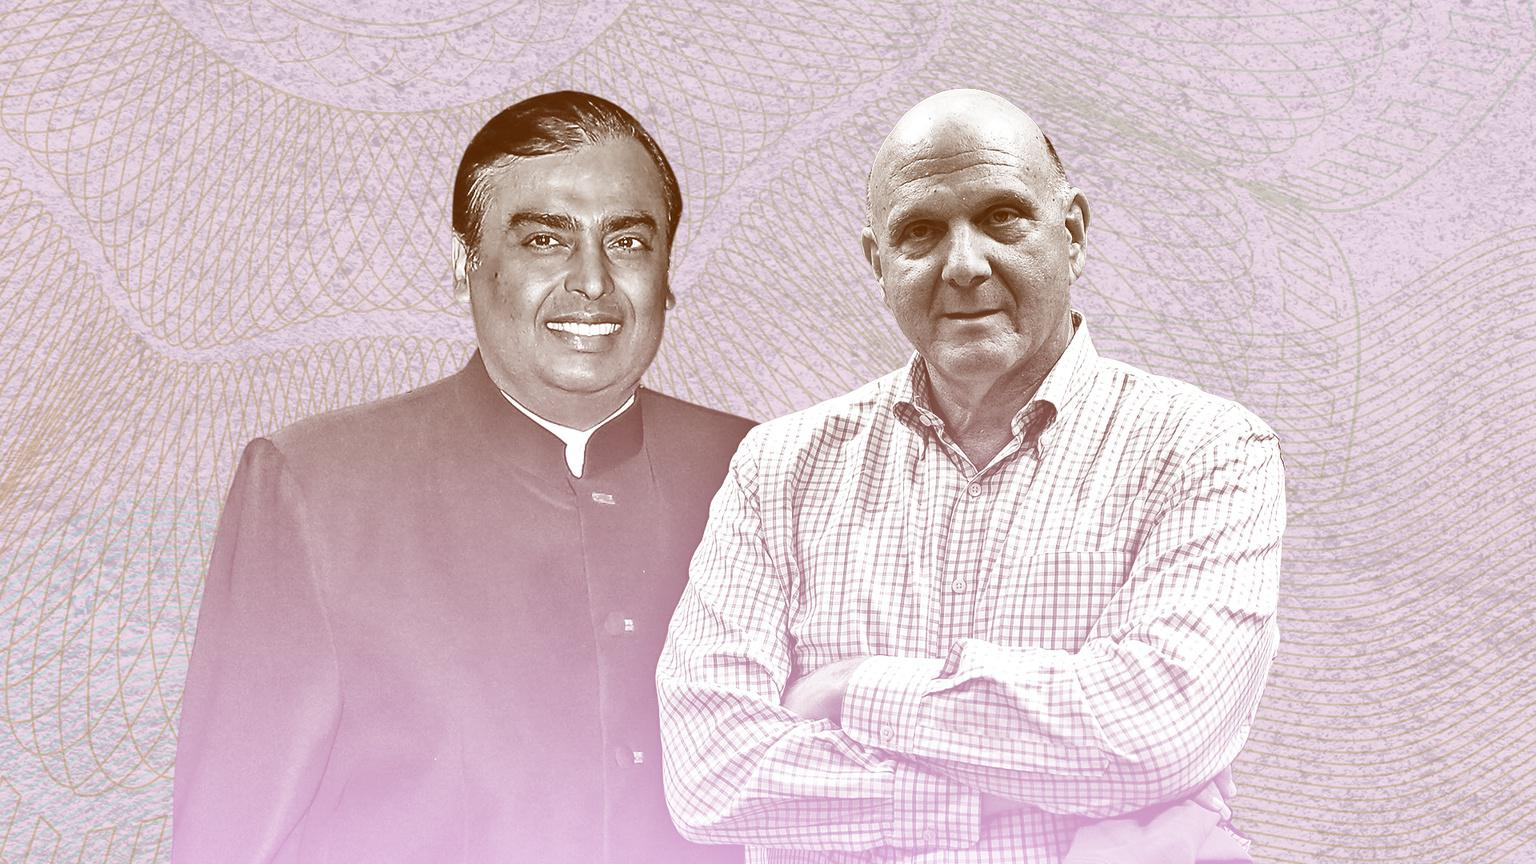 Richest Sports Team Owners